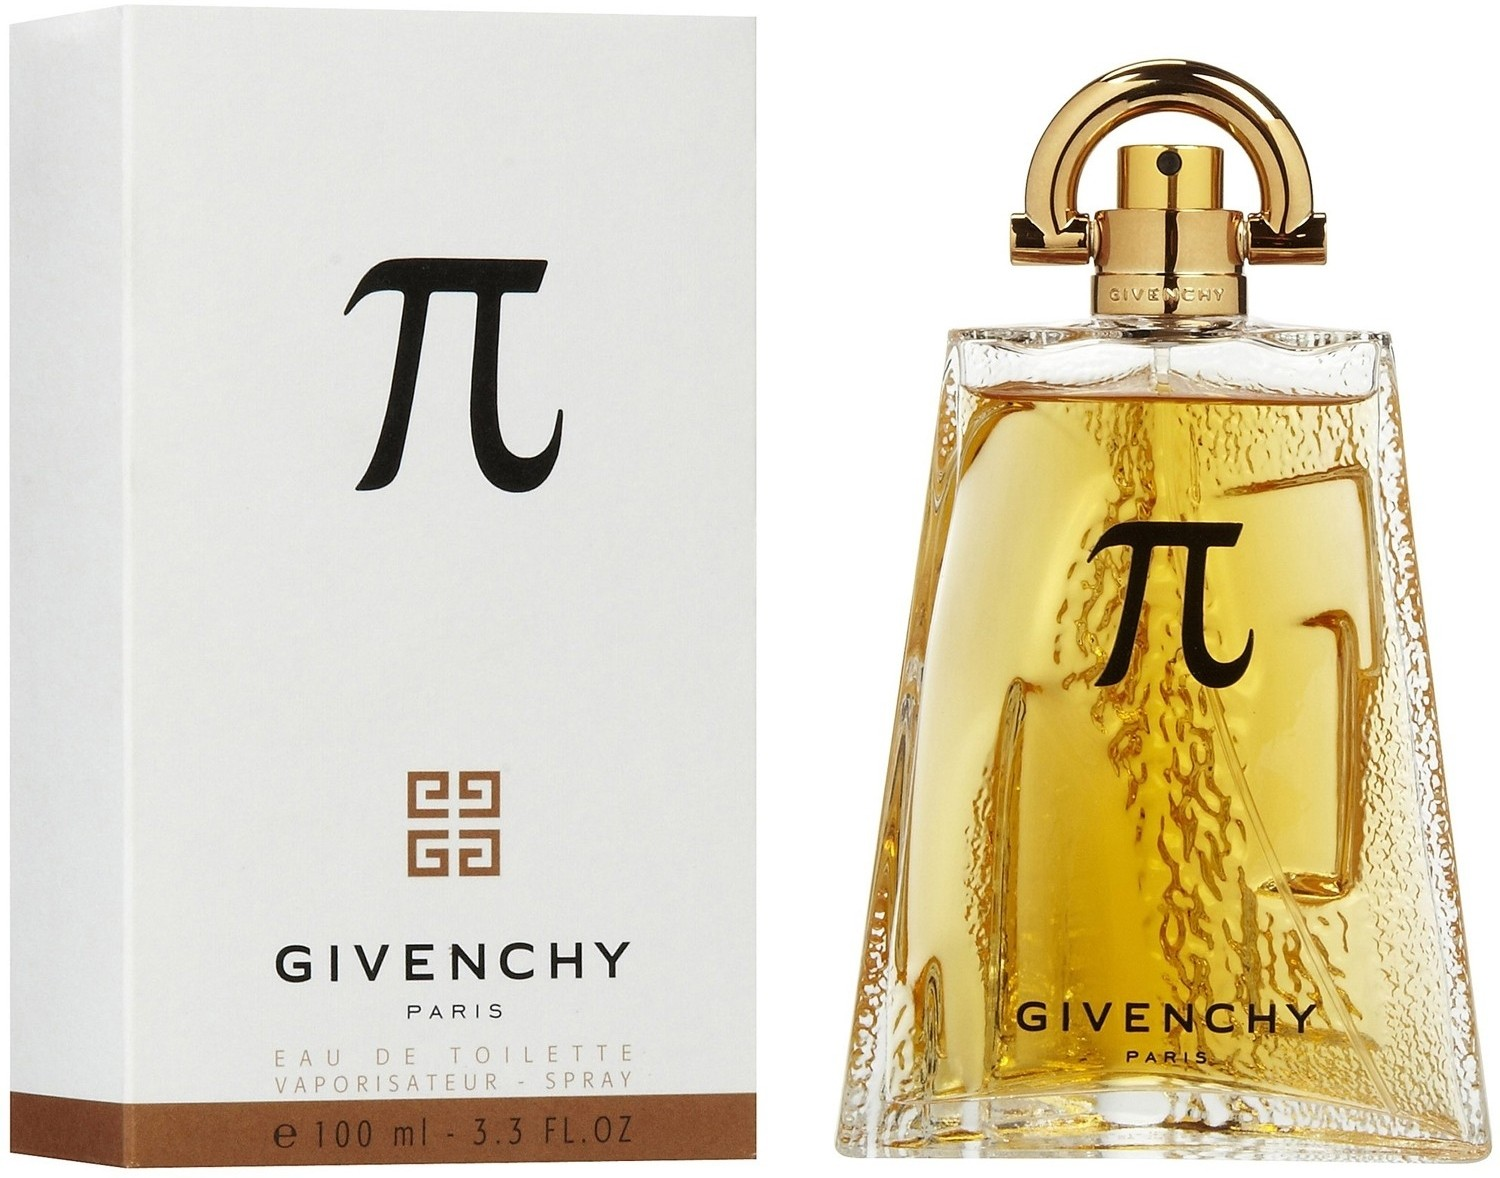 Givenchy Pi EDT  -  100 ml(For Men)